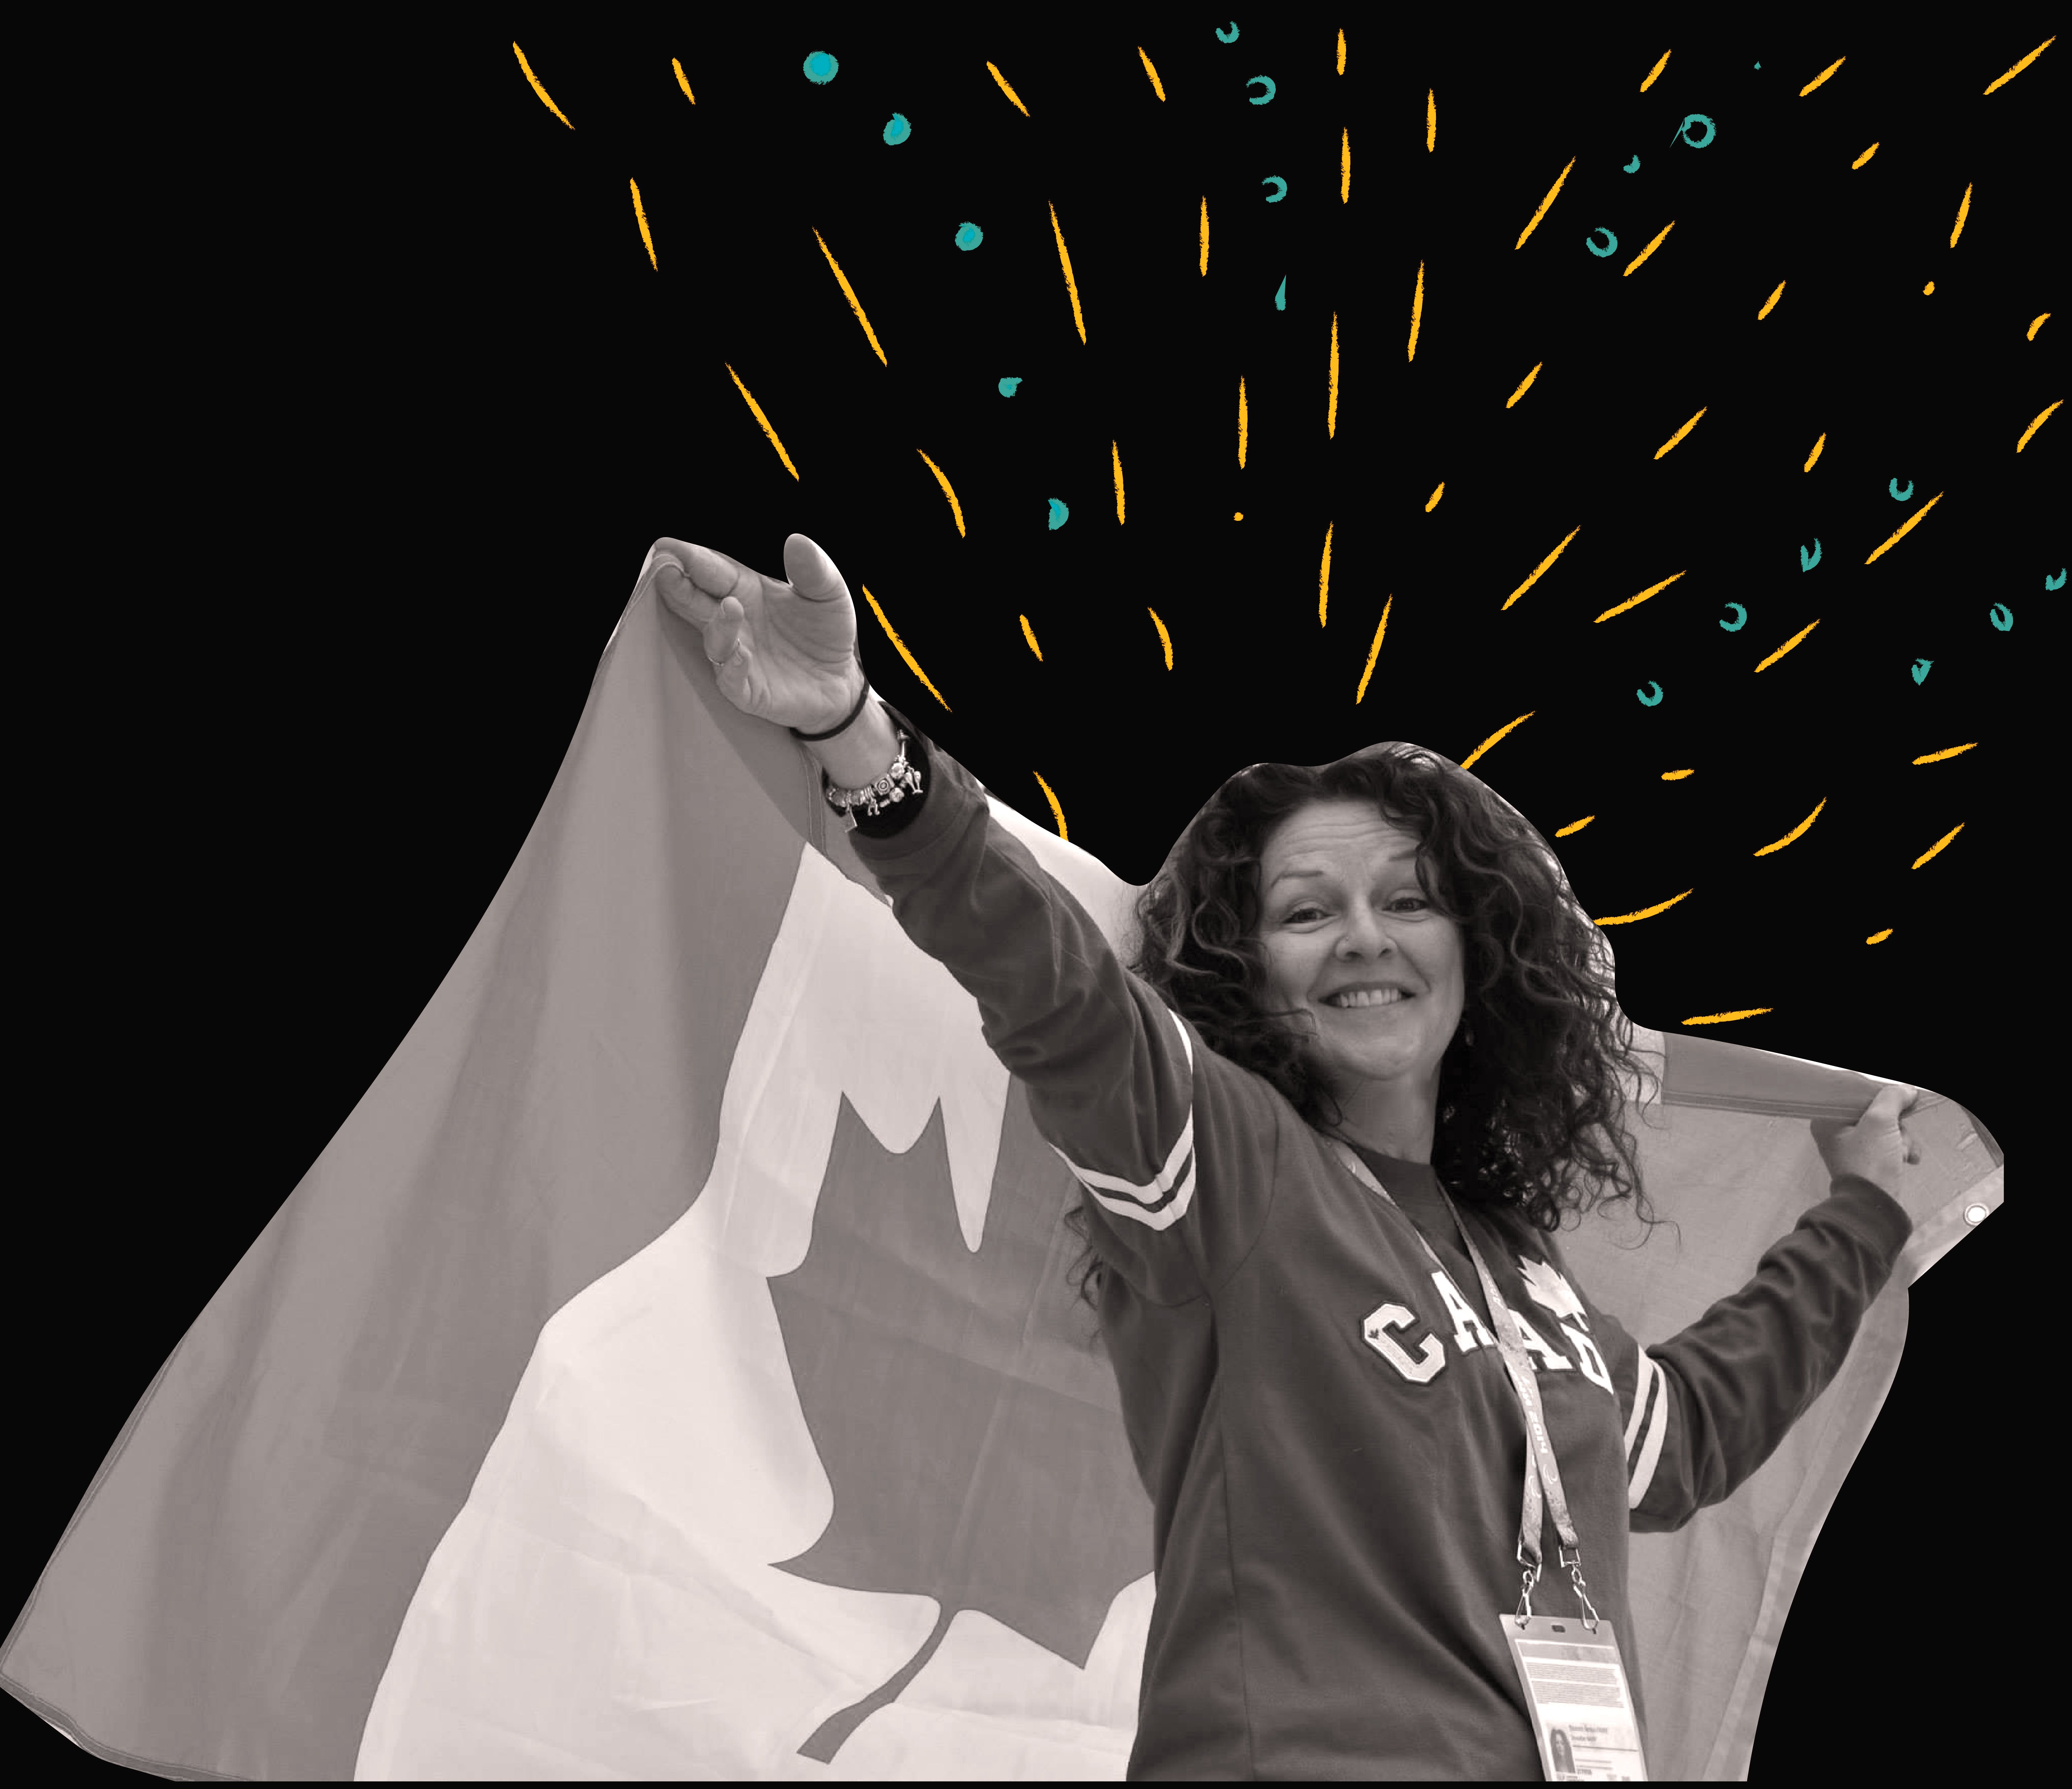 Betty and the Canadian Flag - Belle DeMont